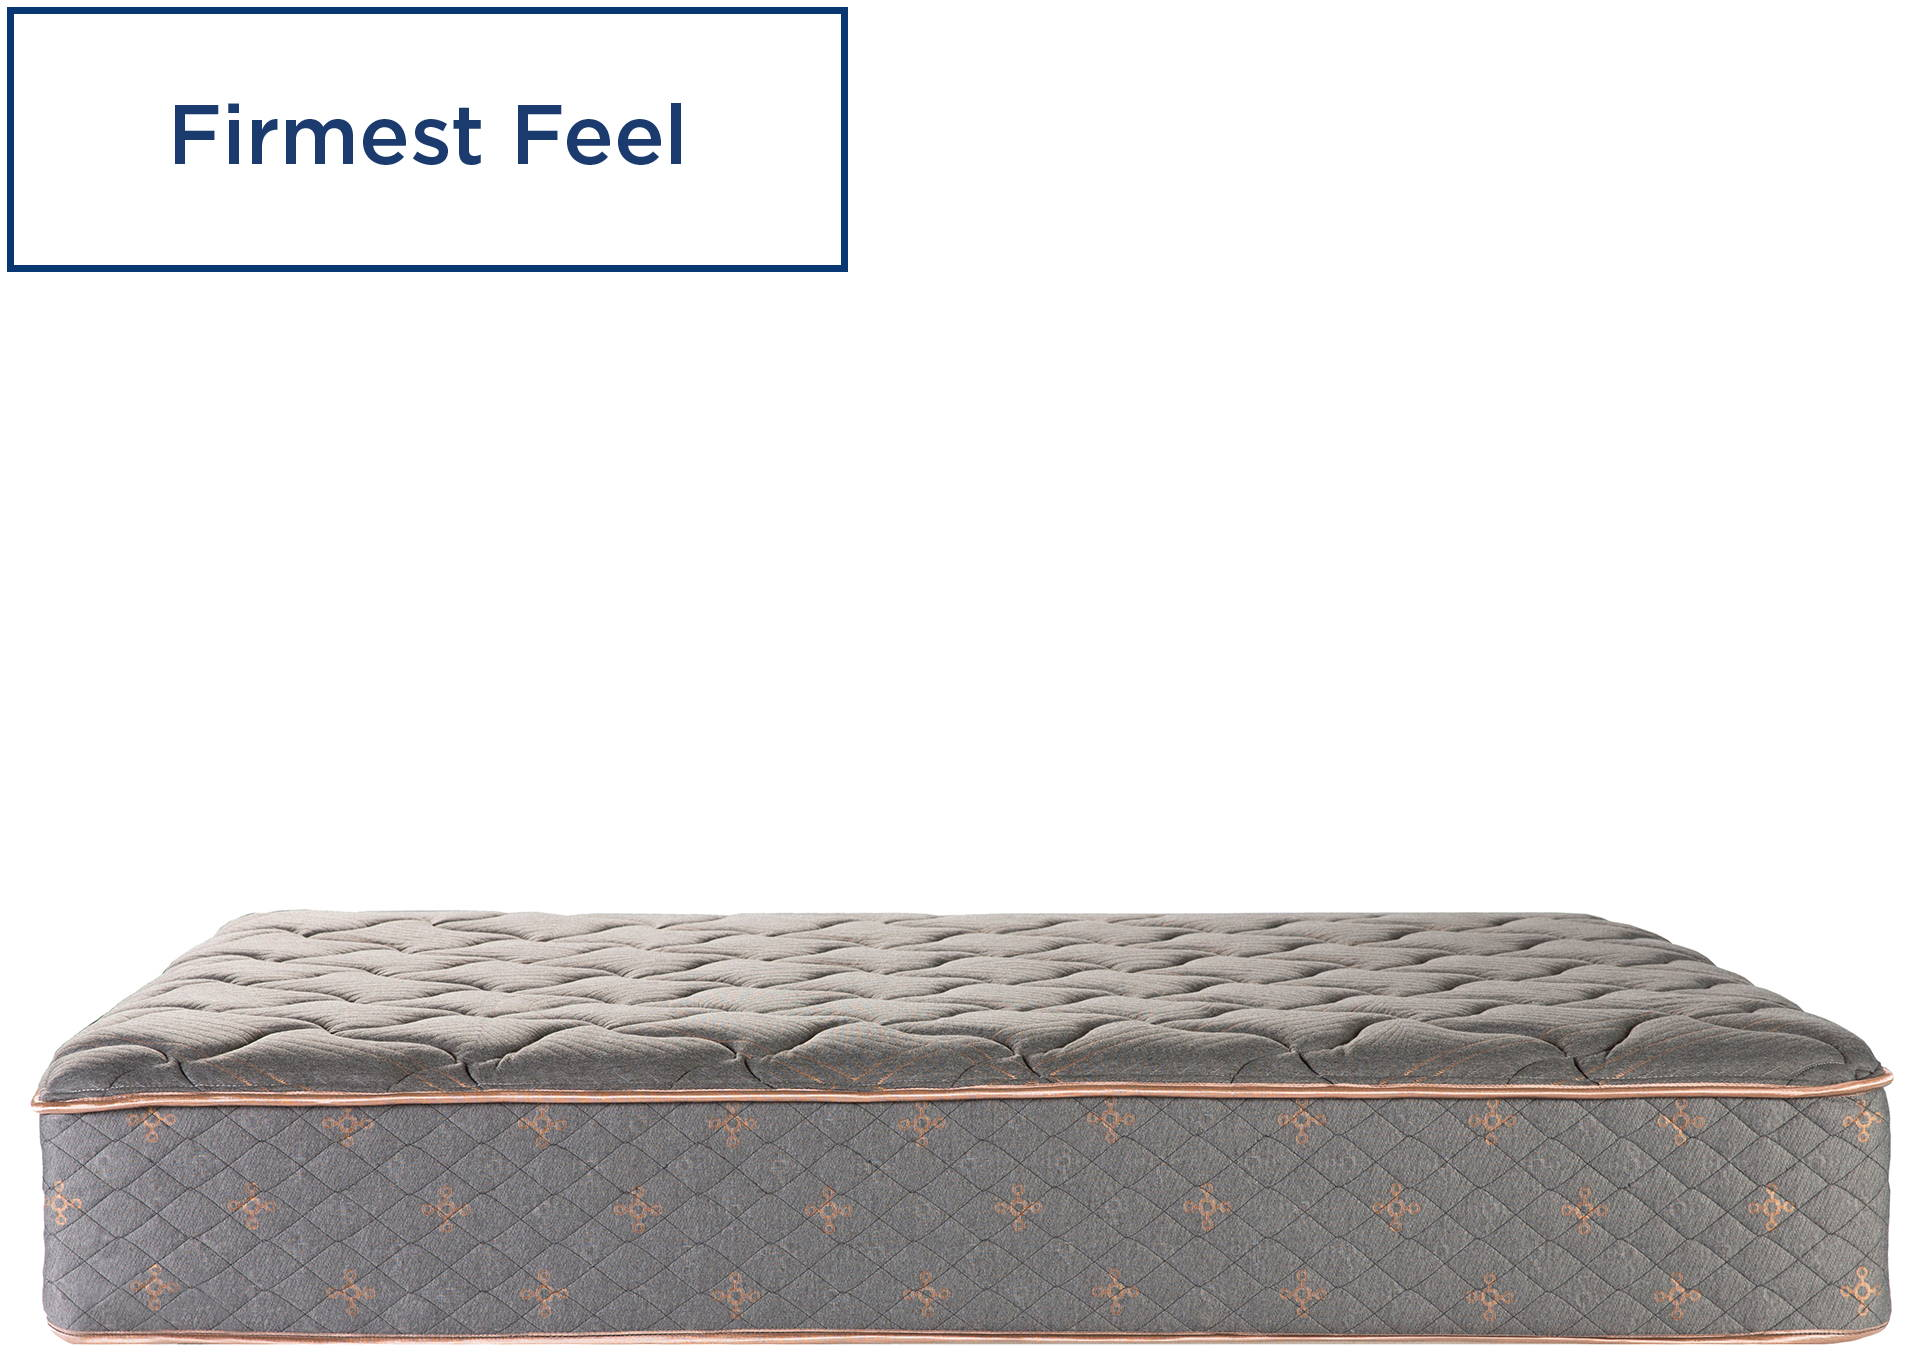 https://www.tommiecopper.com/high-density-support-mattress/